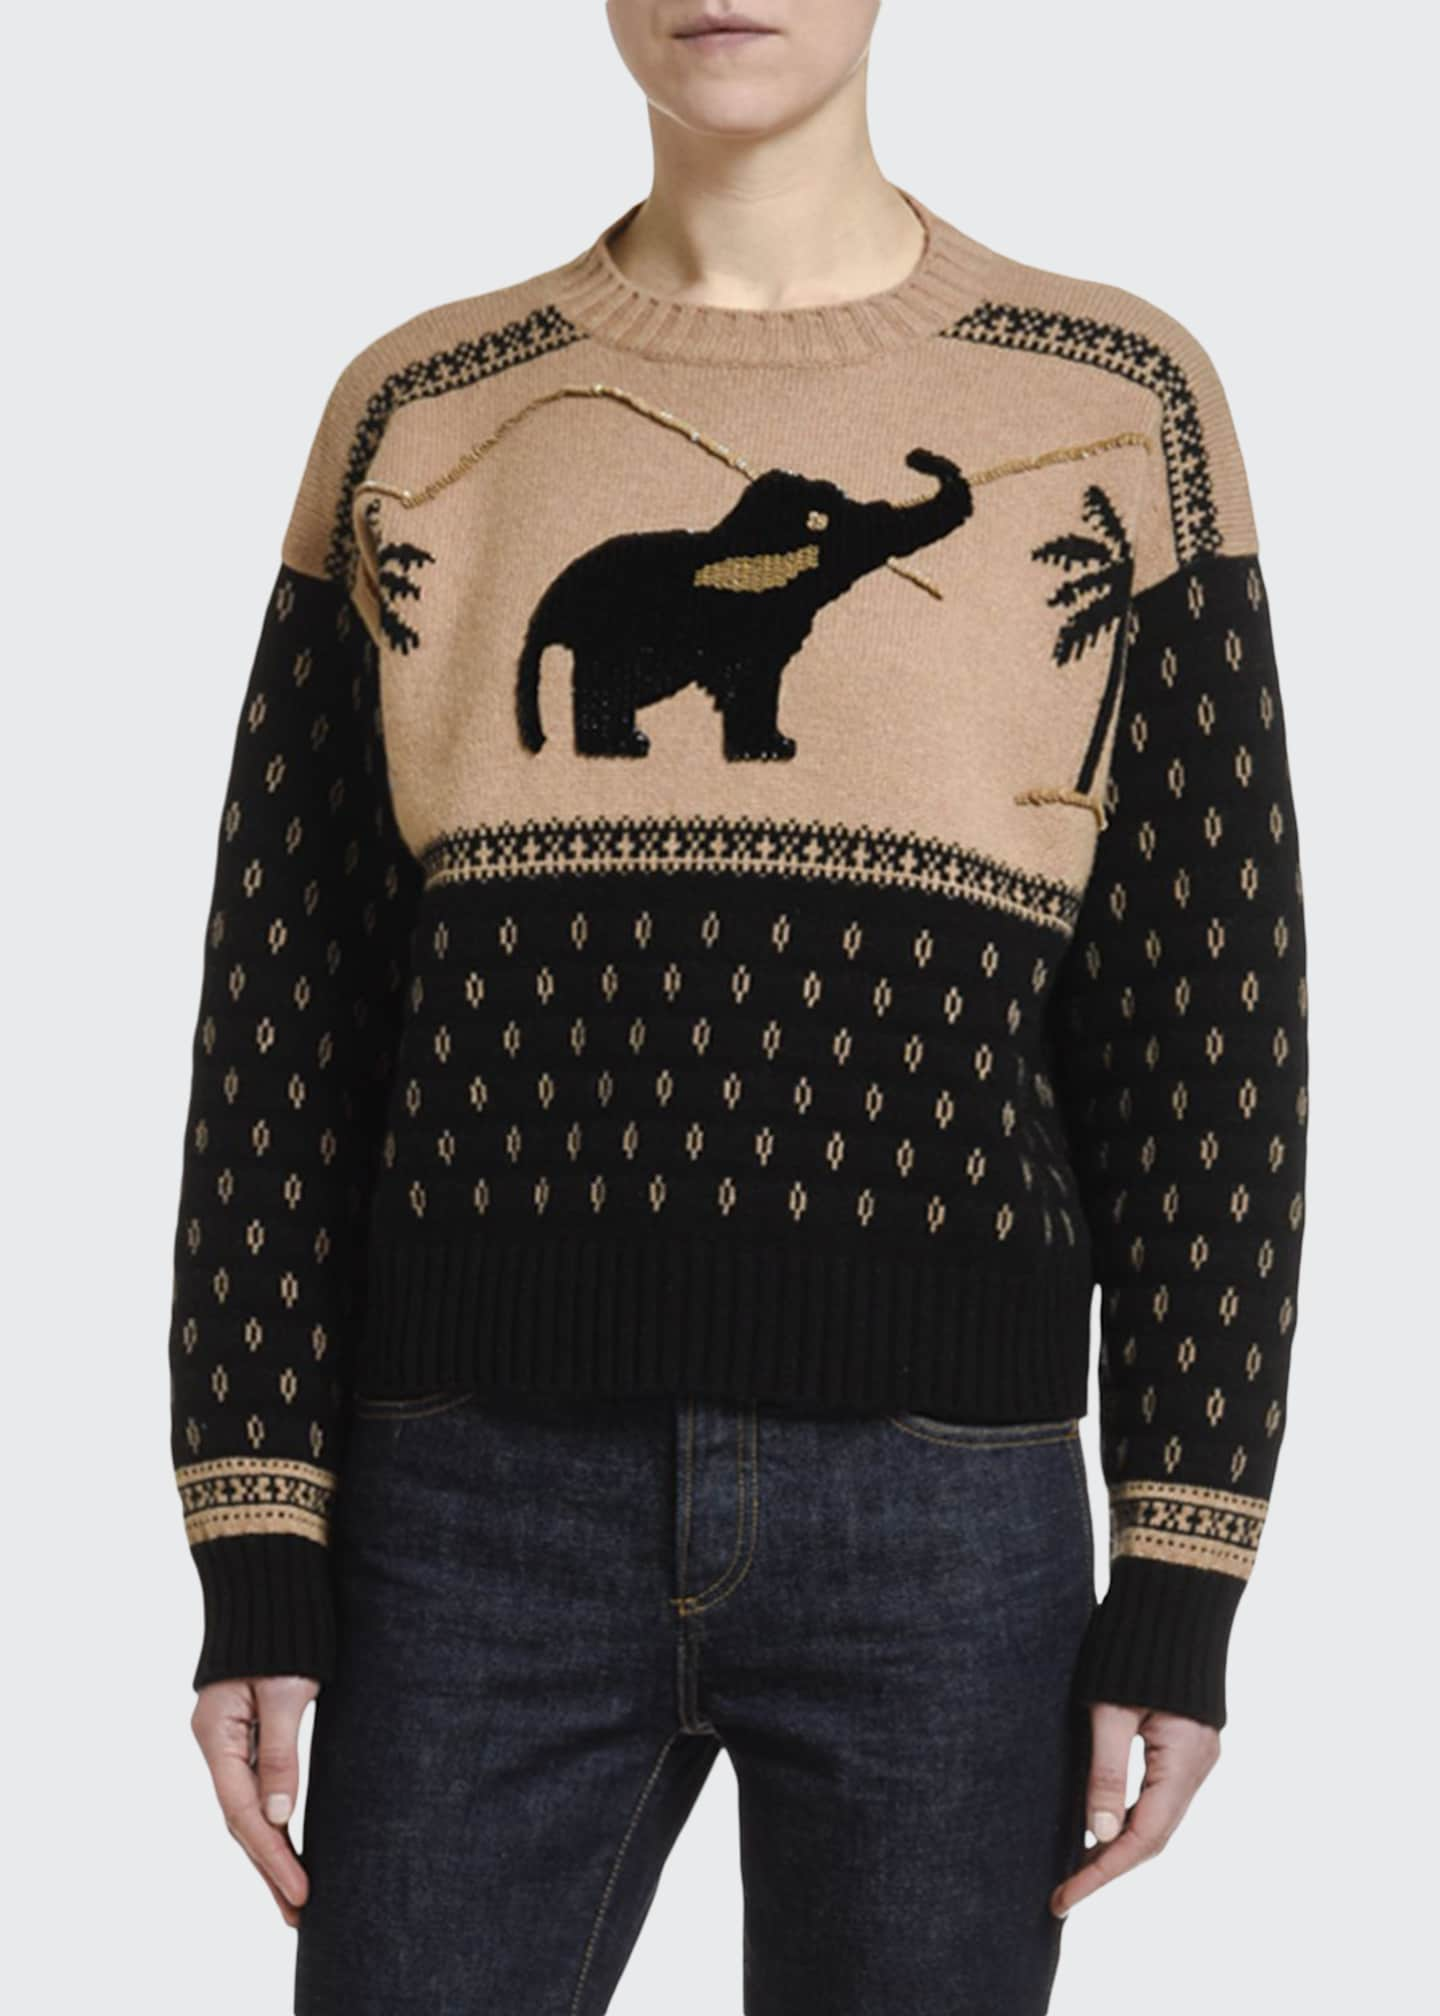 Alanui Wool-Cashmere Hand-Sequined Elephant Sweater